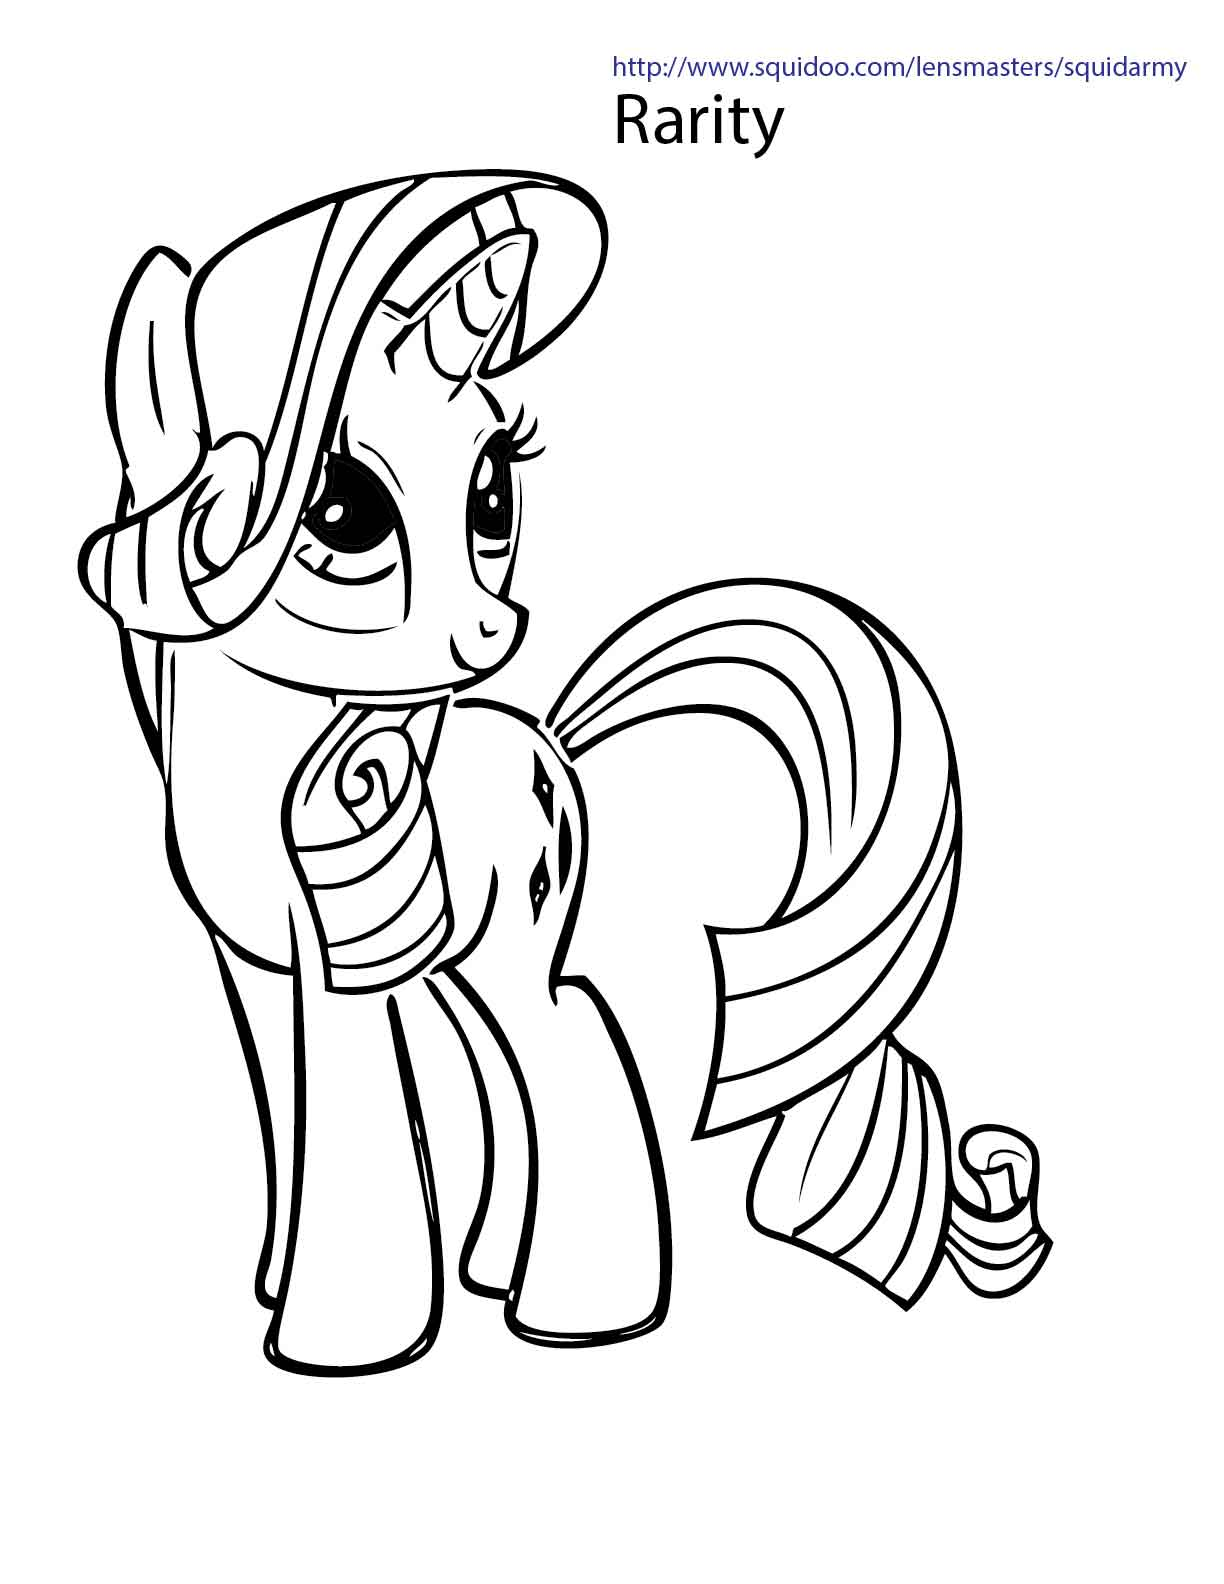 146941 likewise My Little Pony Princess Celestia Coloring Pages together with Displayimage together with Dibujos Para Colorear De La Princesa together with Big Macintosh Coloring Pages. on as an alicorn twilight sparkle